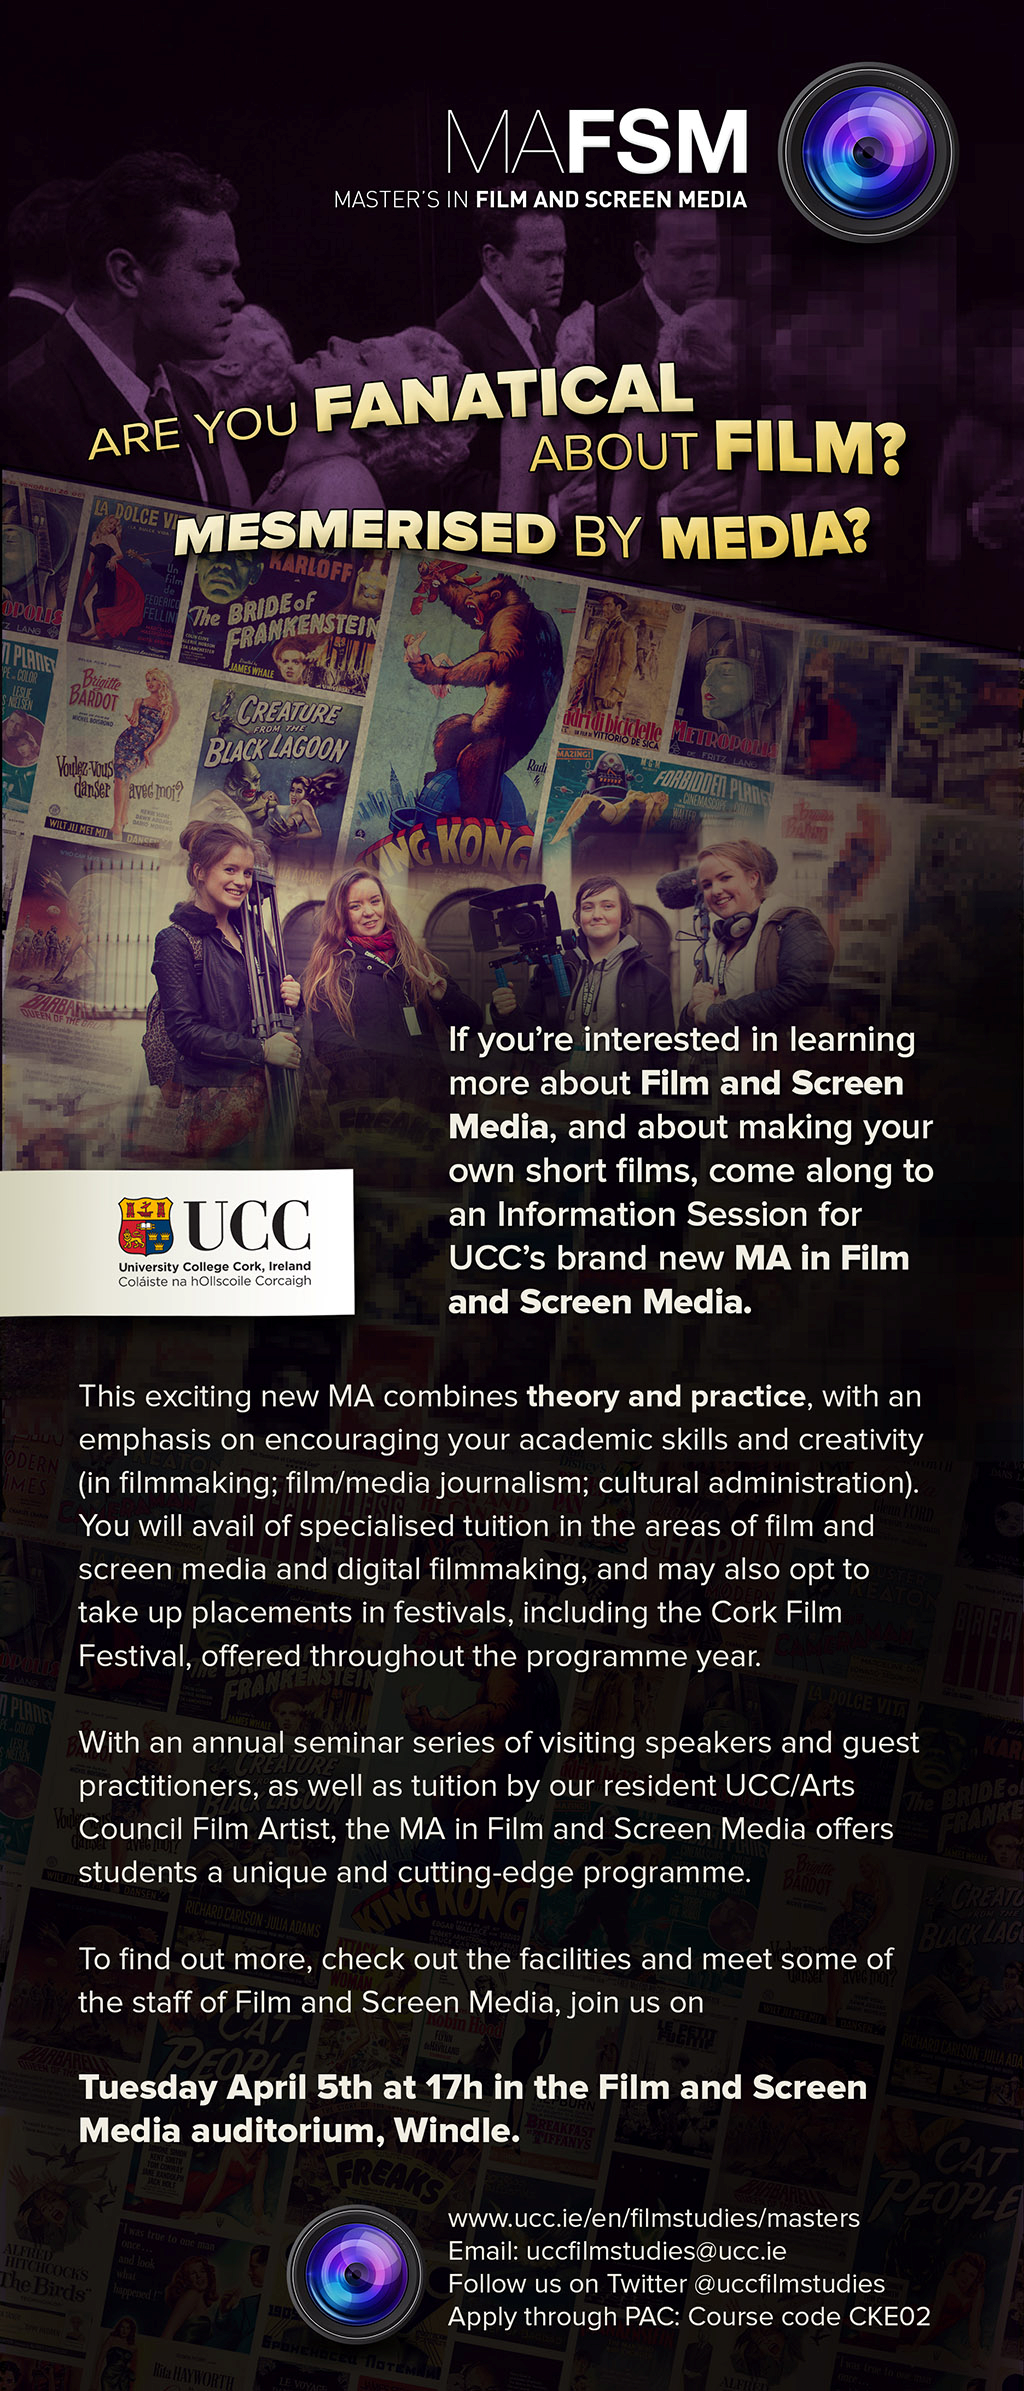 Information Session for new MA in Film and Screen Media